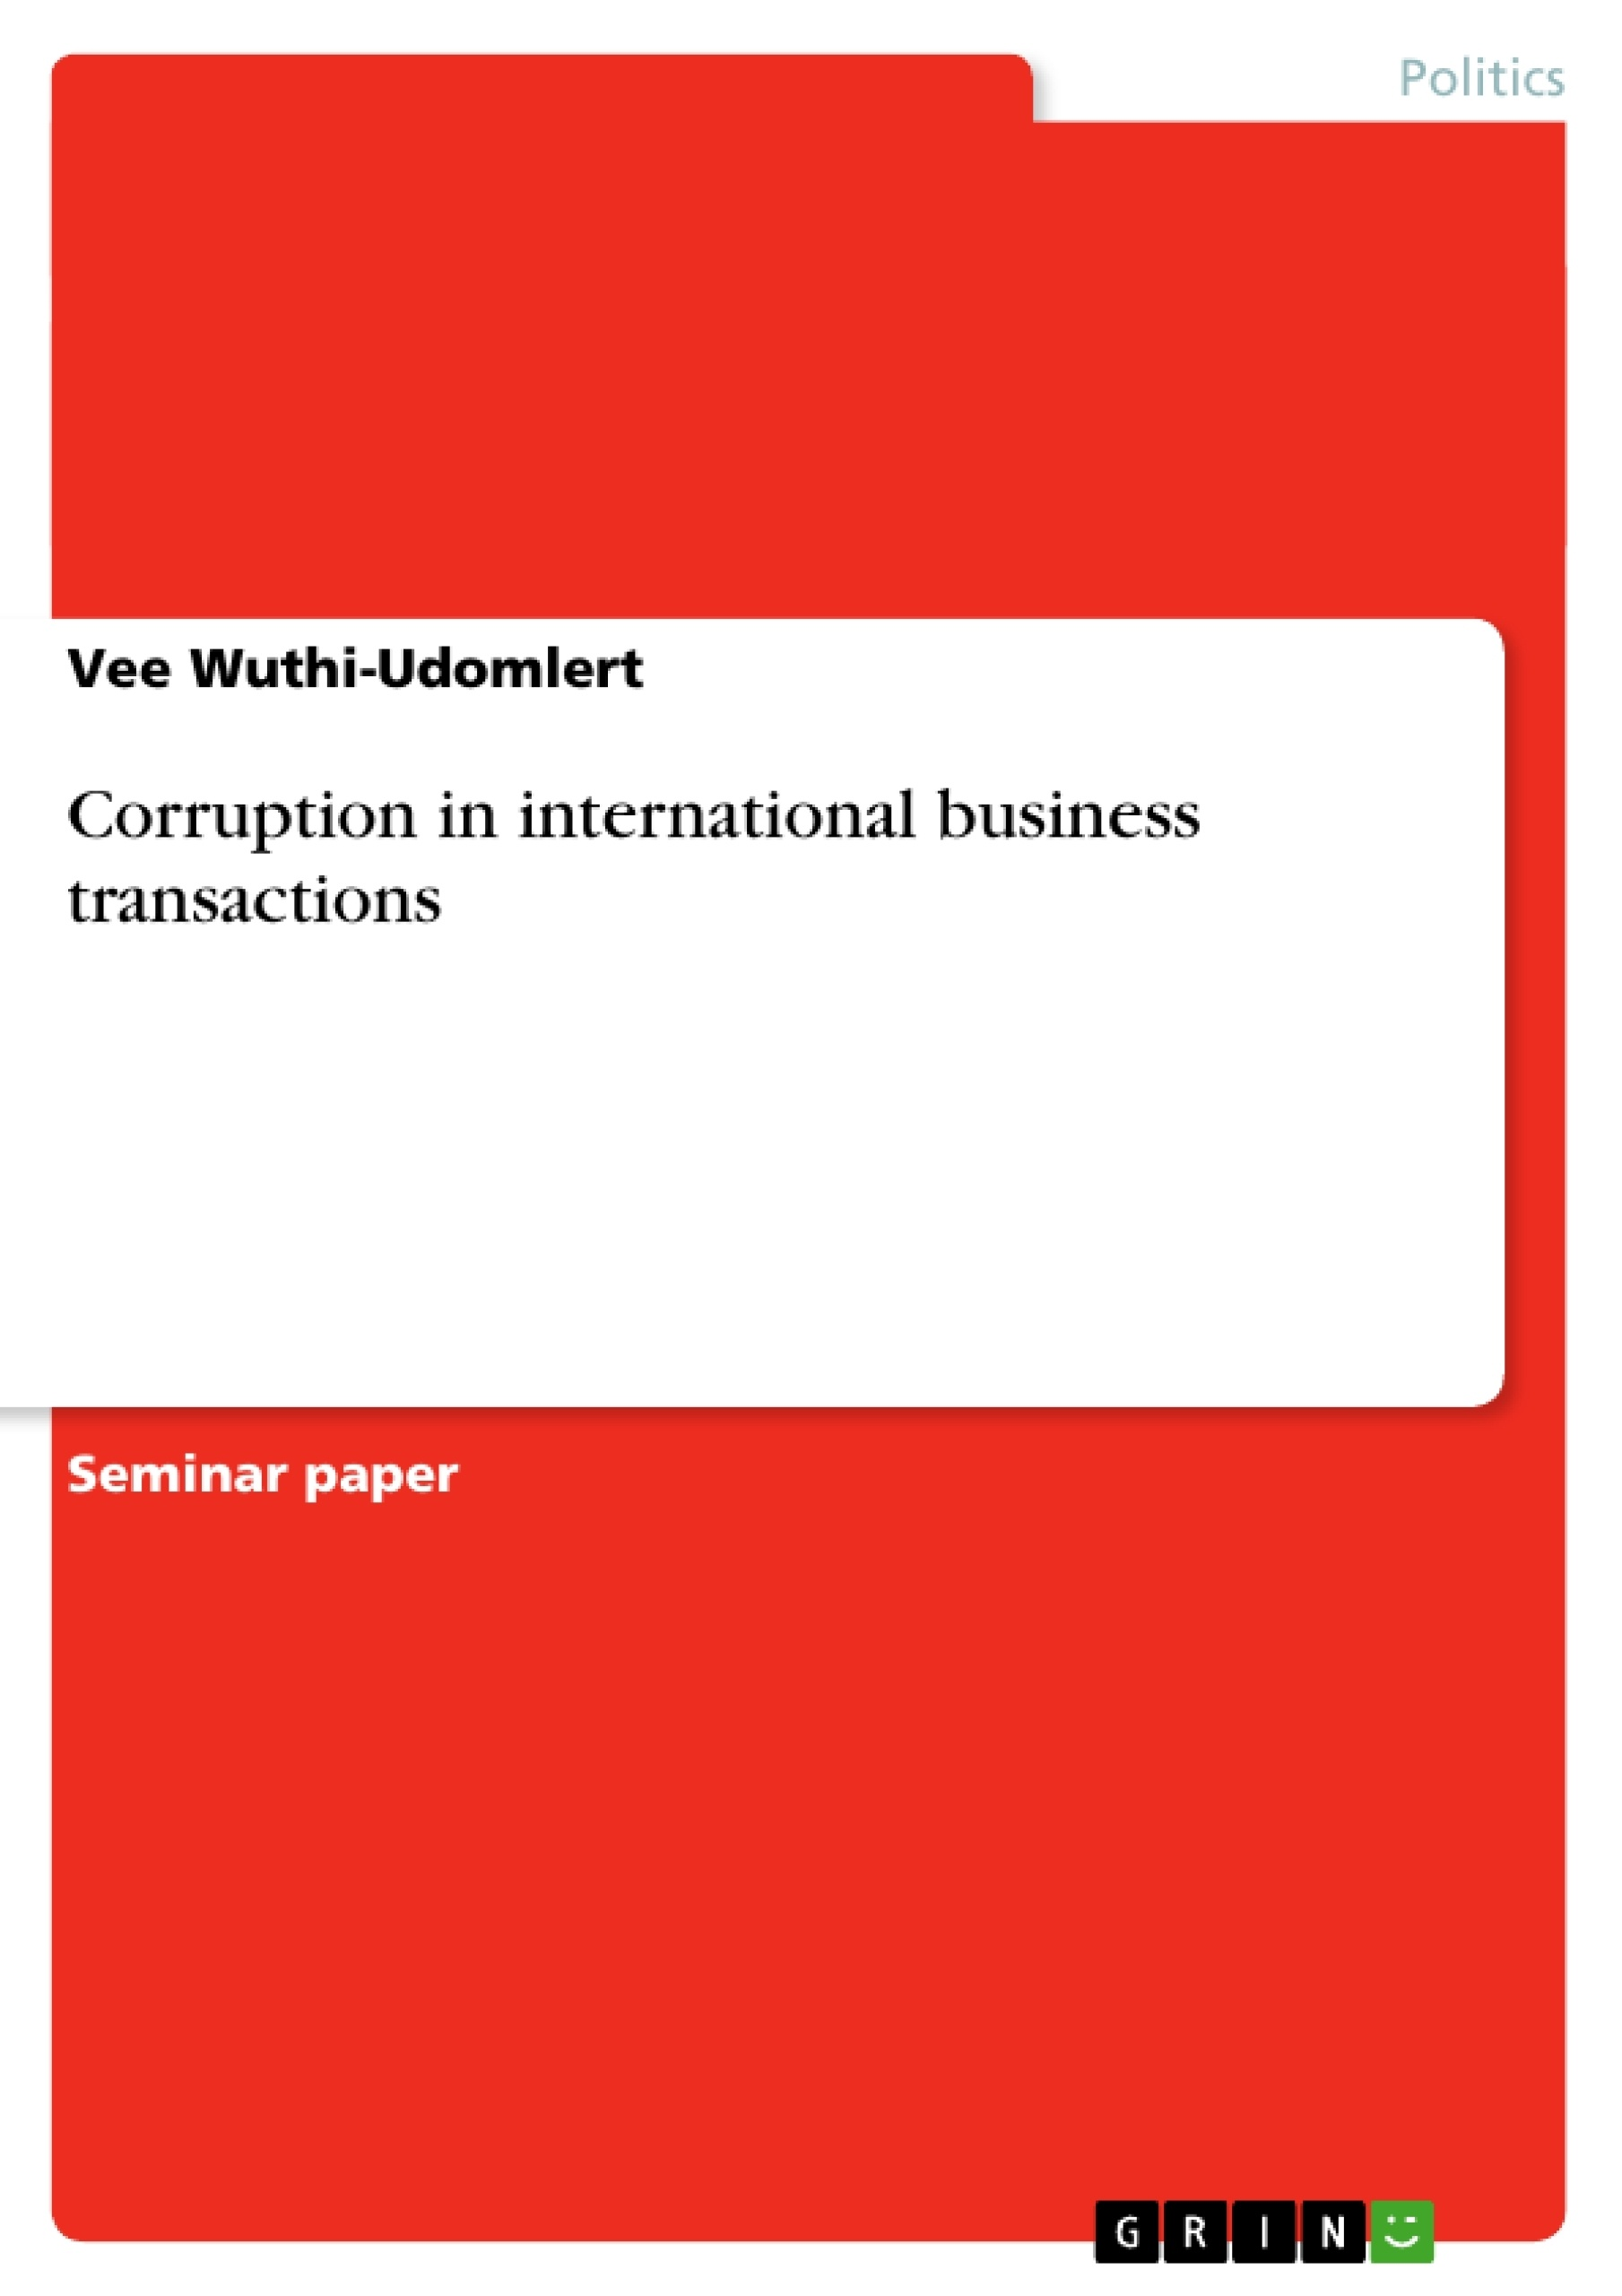 international business paper corruption in international business  corruption in international business transactions publish your upload your own papers earn money and win an international business research paper